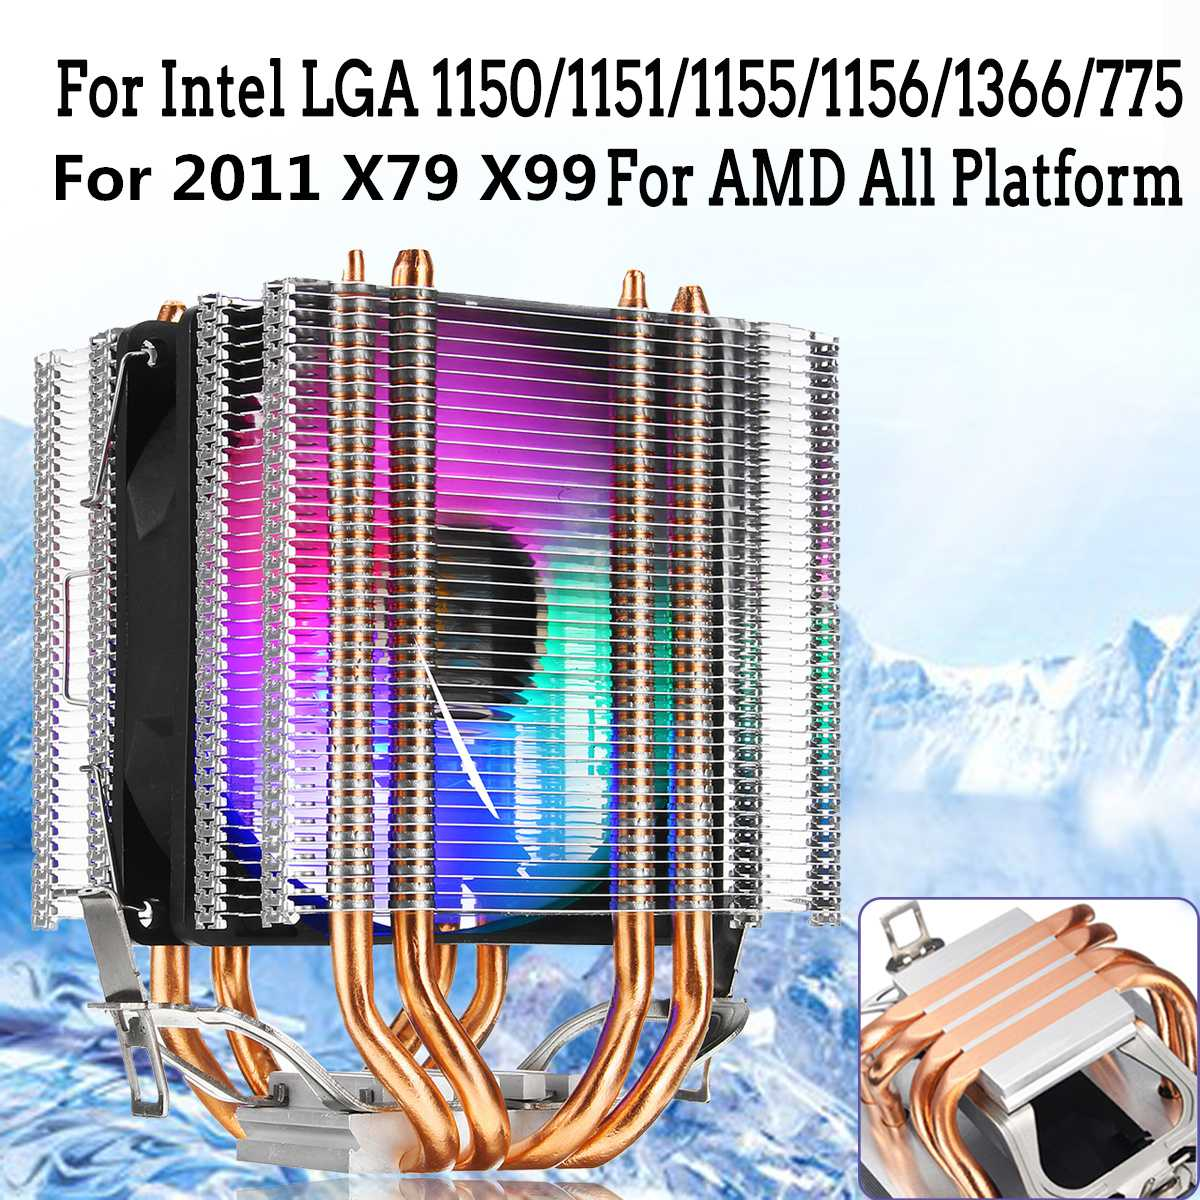 Cooler 2011 3Pin 4 Heatpipe Cooling Fan Dual Tower RGB CPU Cooler Heatsink For Intel X79 X99 775/115X/1366 and AMD For HUANANZHI